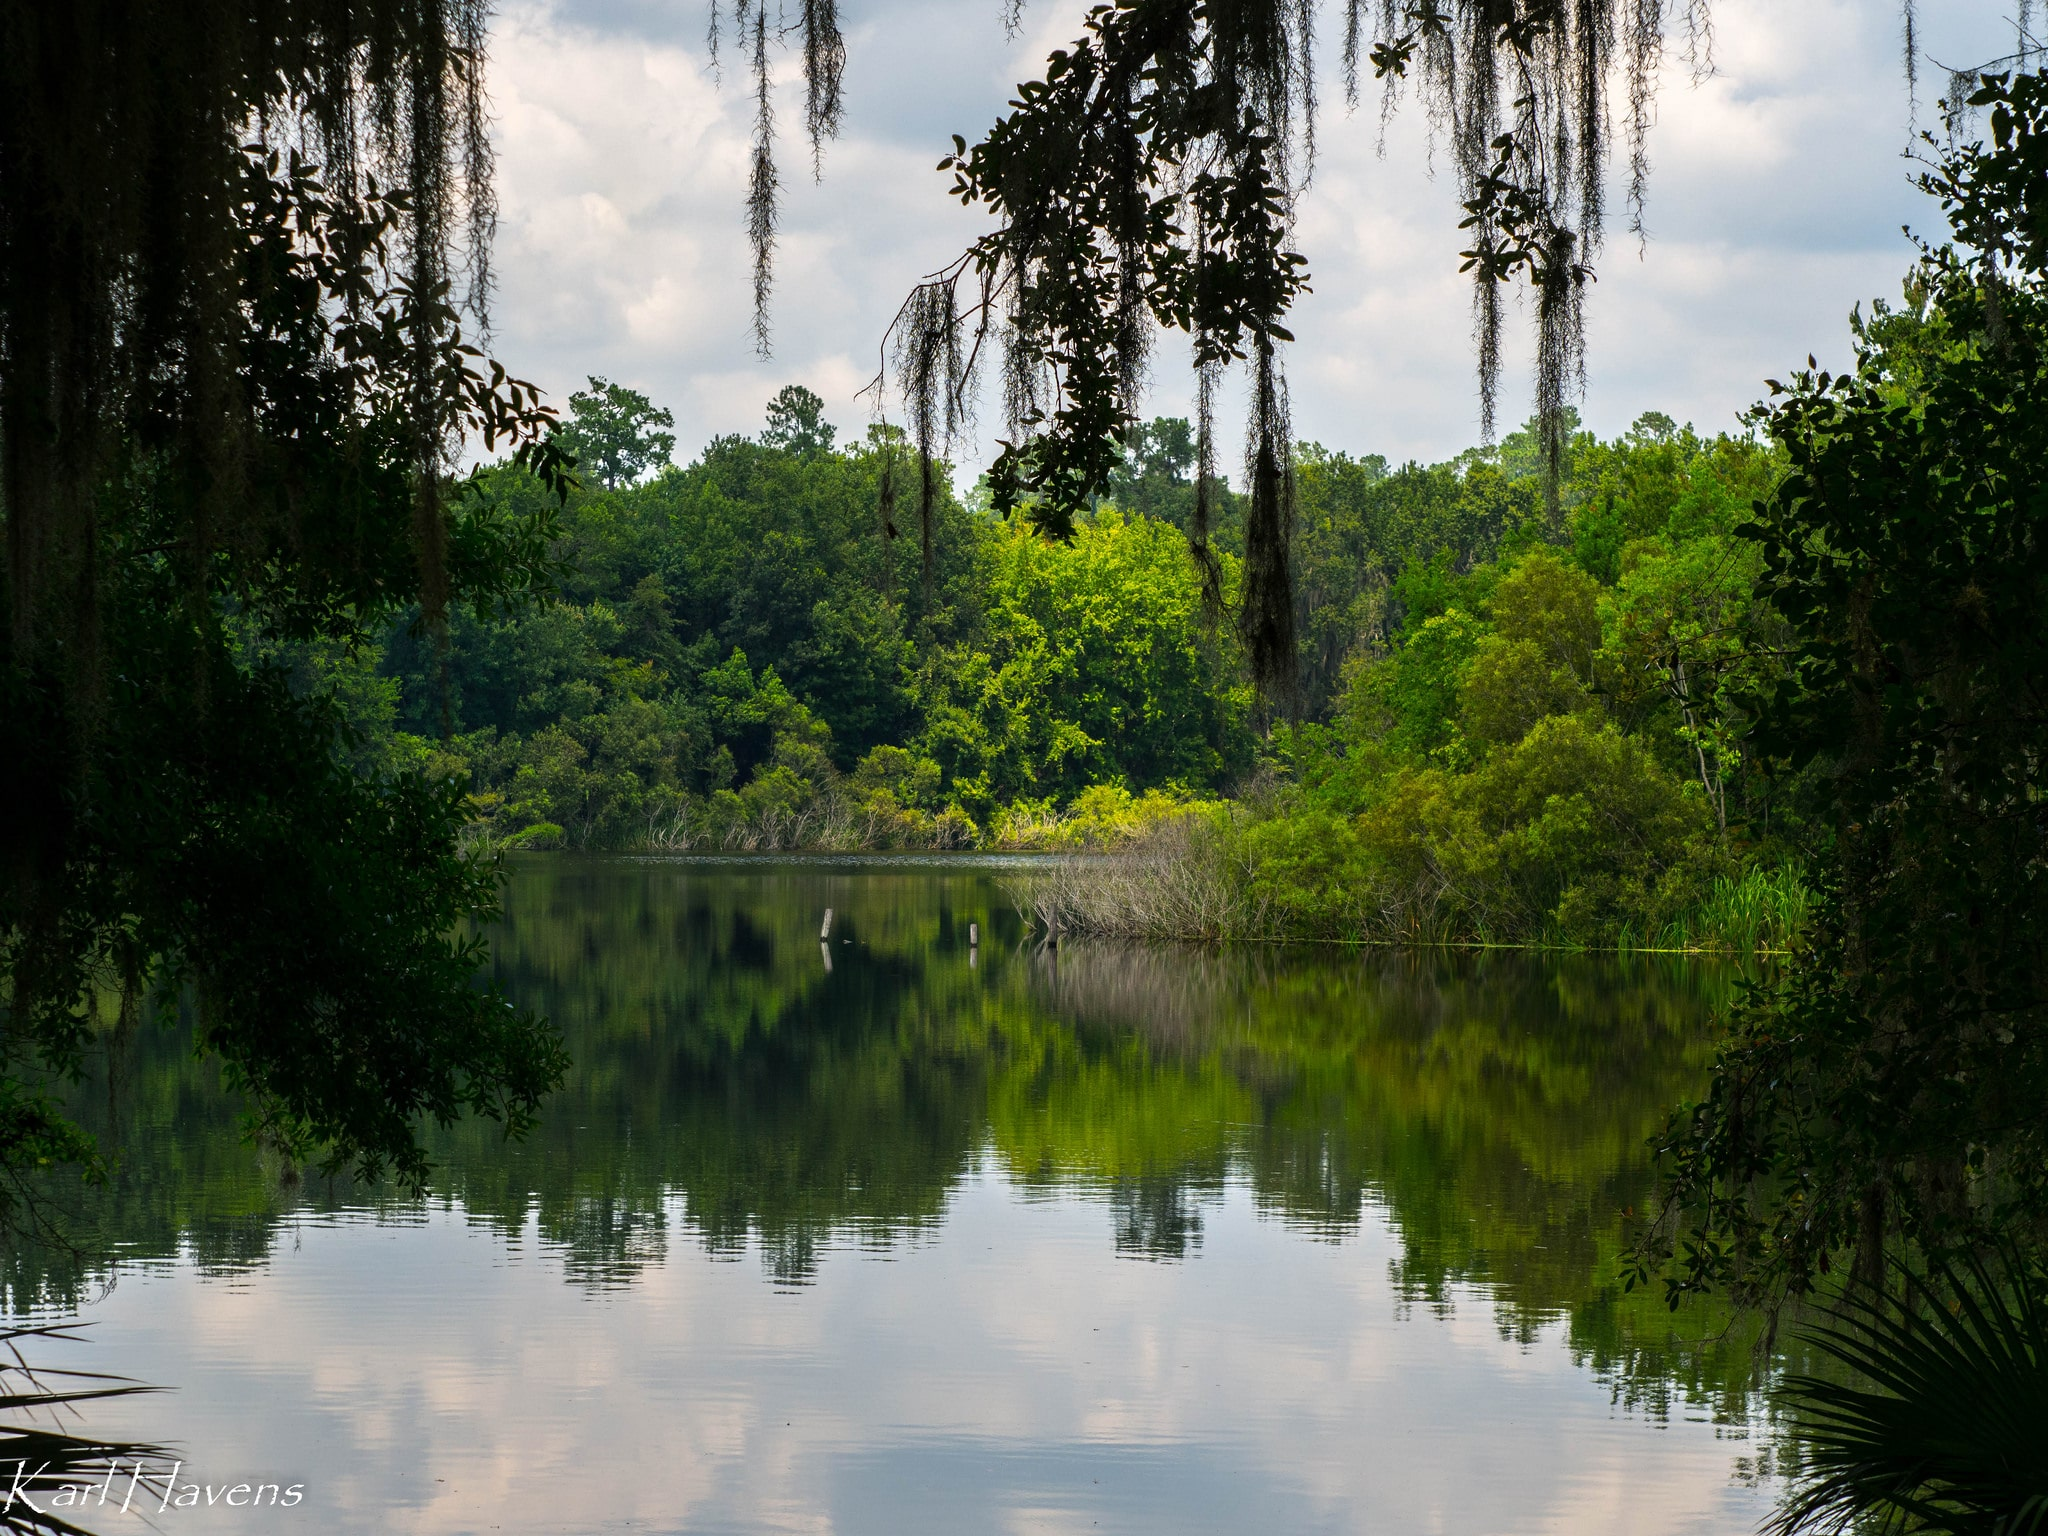 """Havens Lake Alice Zeiss Tessarr"" Florida Sea Grant CC BY-NC-ND 2.0 https://goo.gl/6Cg2S6"